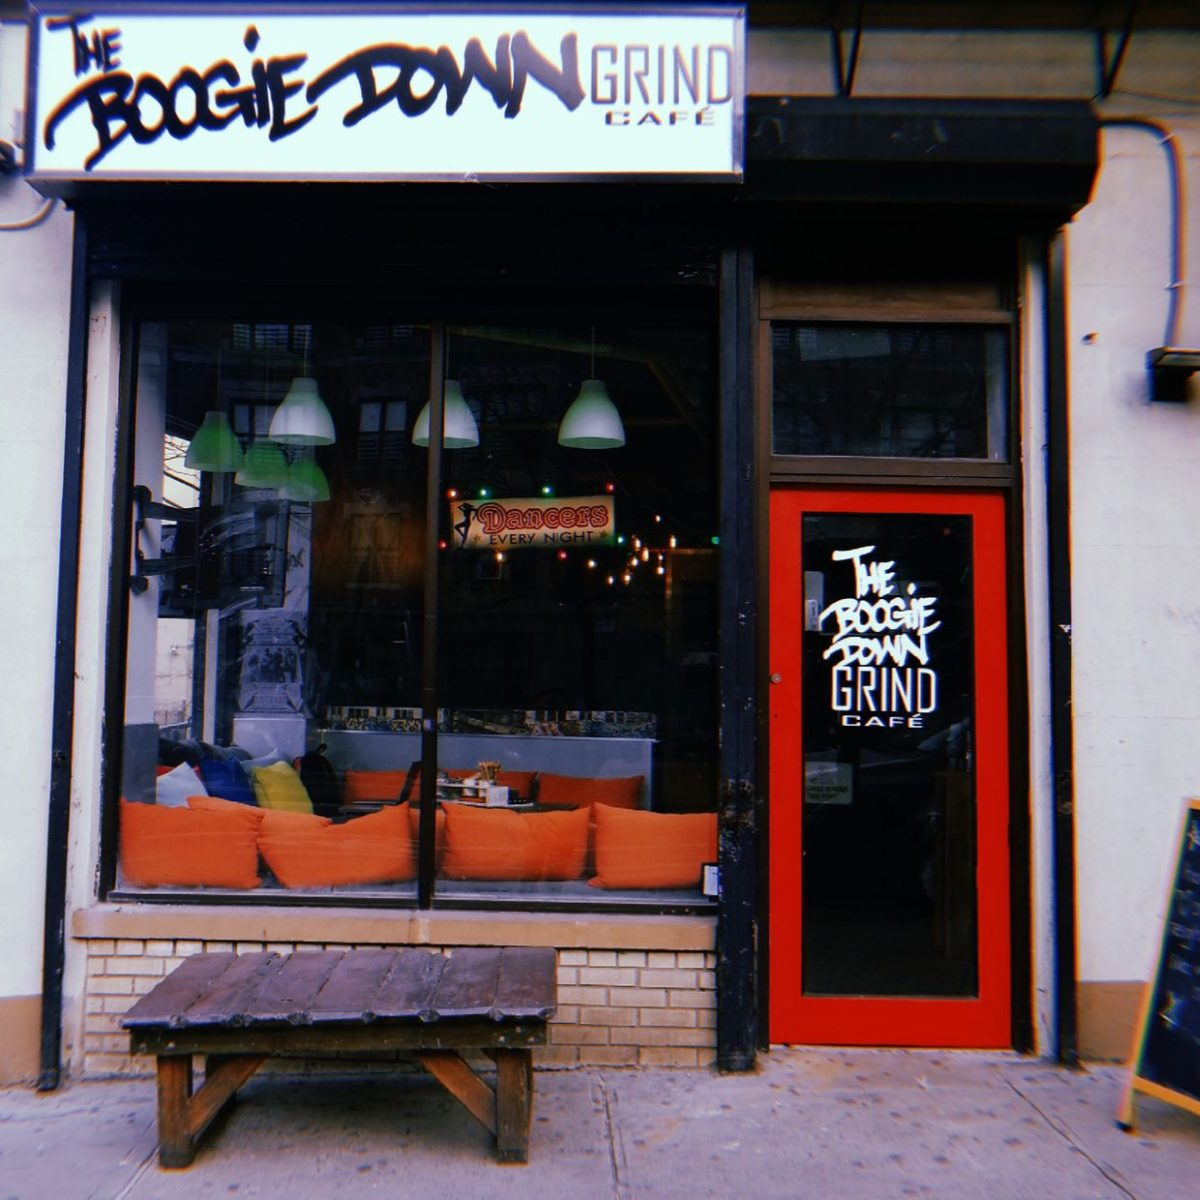 This Hip Hop Coffee Shop Received A Financial Boost From Beyoncé To Help Continue Its Commitment To Community